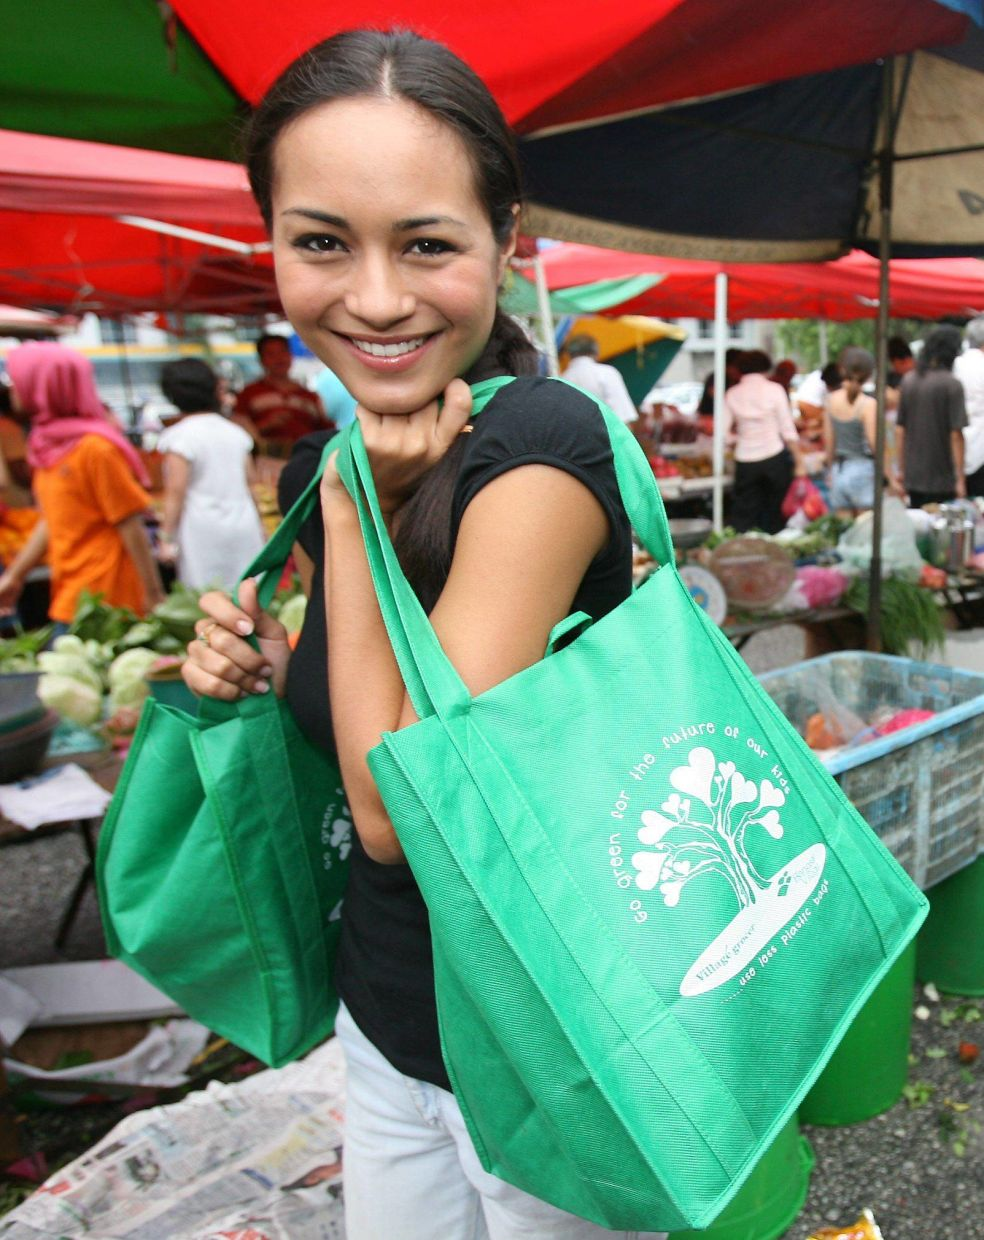 Maya Karin ditched single use plastic bags back in 2006, long before it became fashionable to do so. She's made a lifelong committment to championing environmental issues. — Filepics